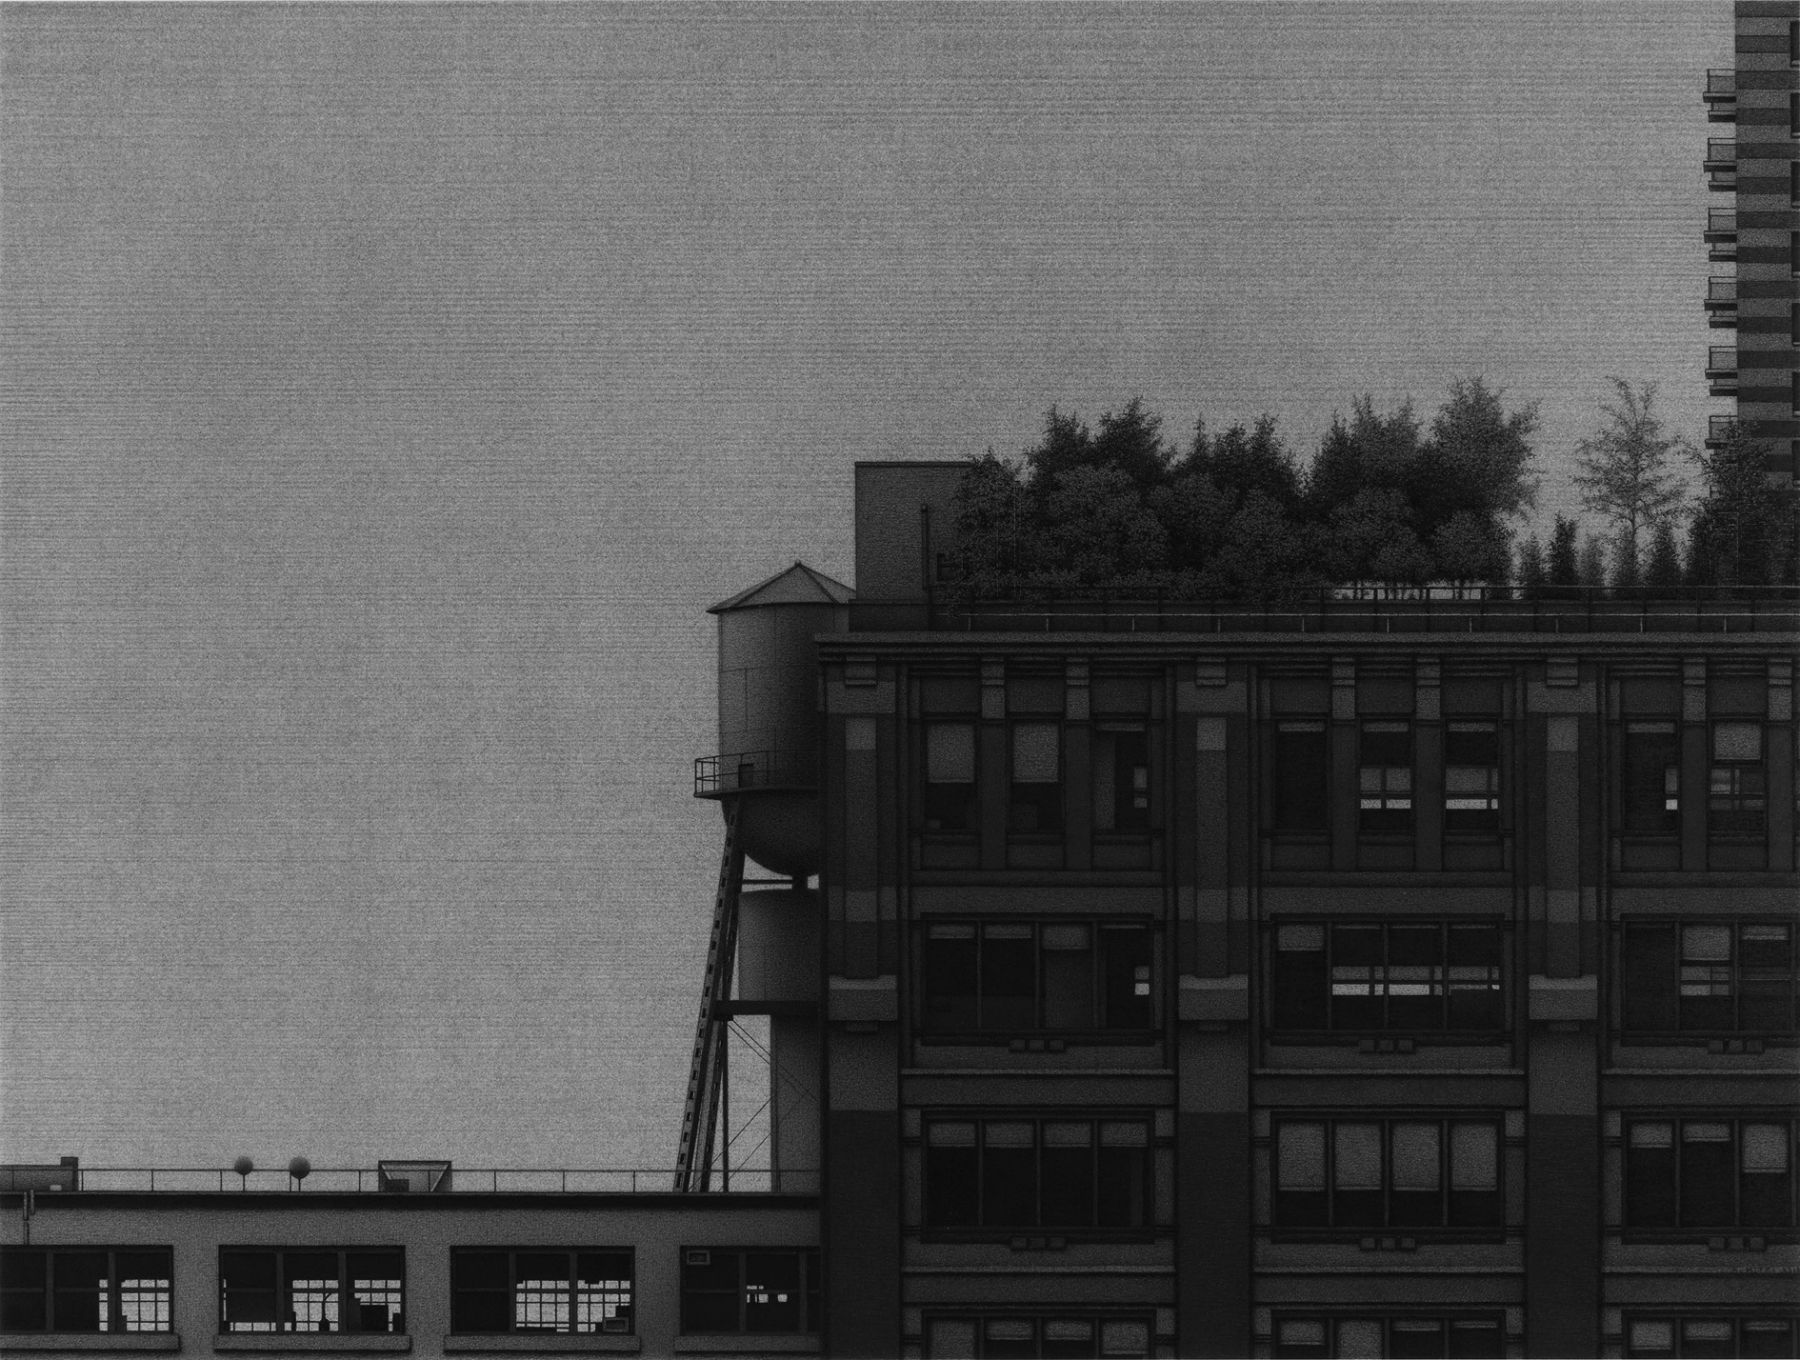 anthony mitri, Plein Air, Manhattan, 2013, charcoal on paper, 22 x 29 1/4 inches